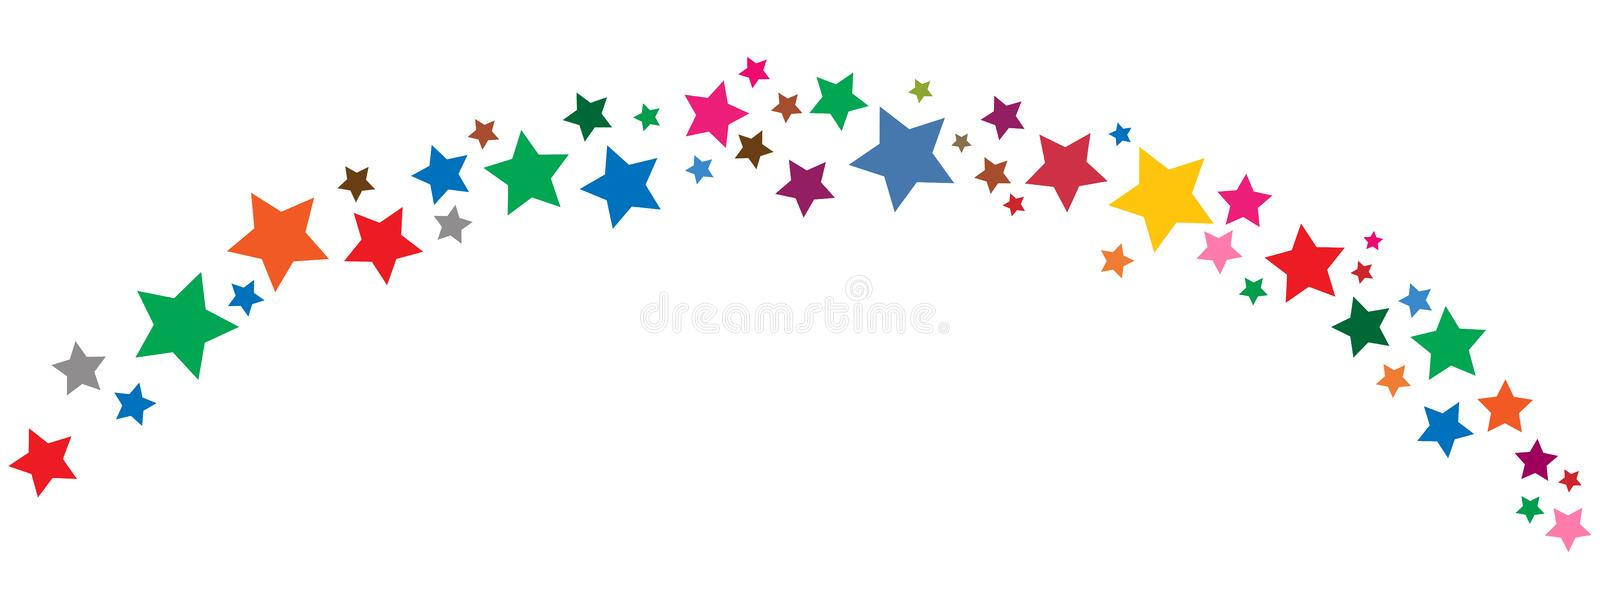 Colorful Stars border like vibgyor stock illustration